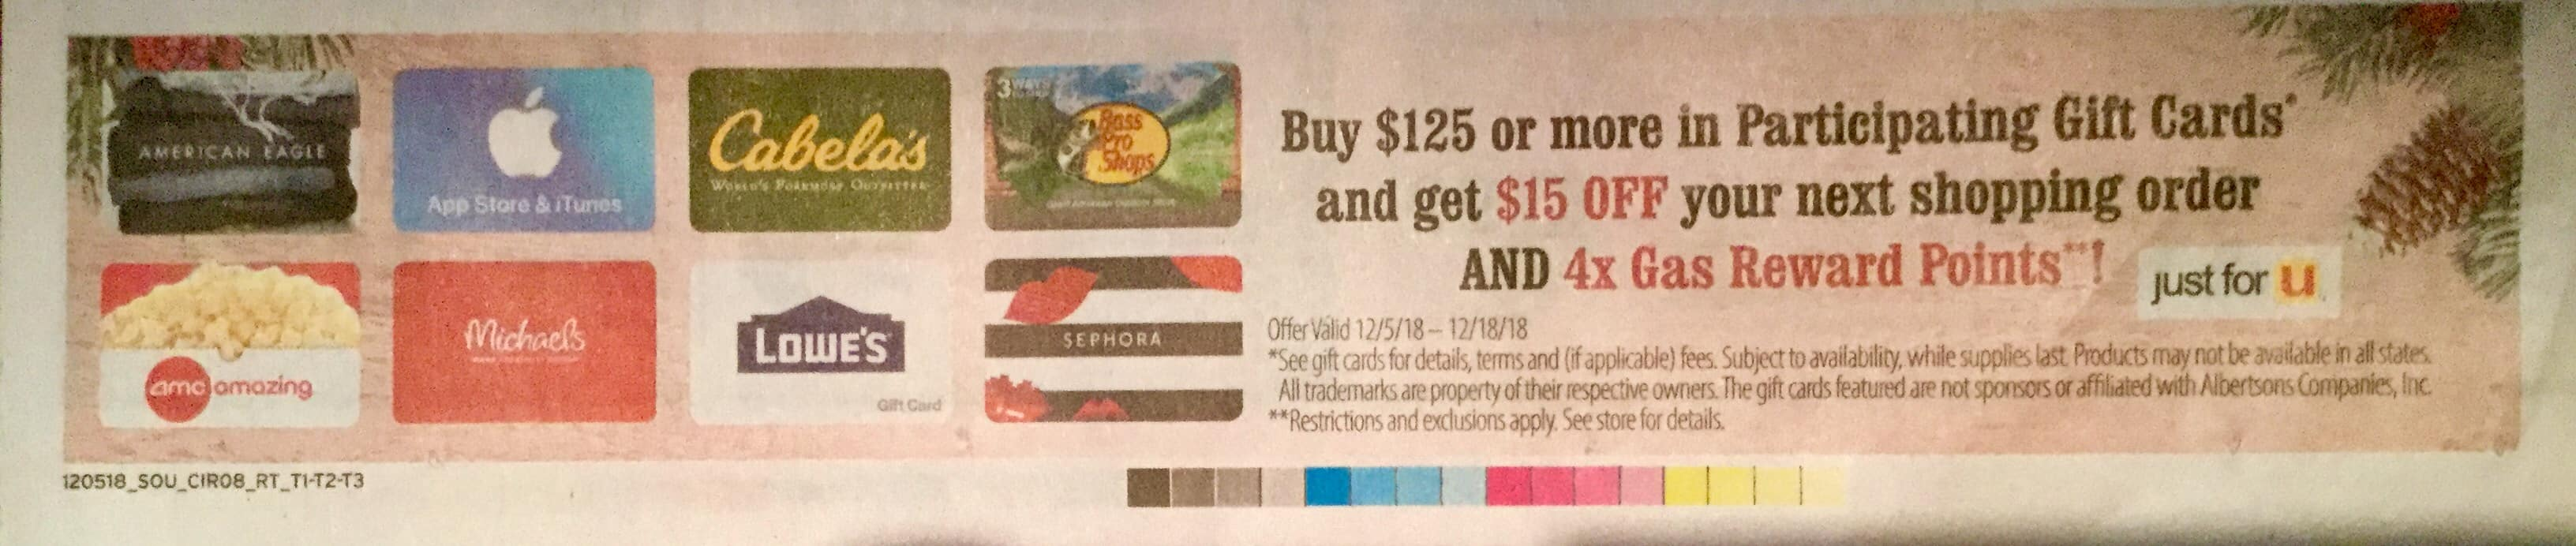 Randall/Albertsons Buy $125 Gift Cards Get $15 Off Next Shopping Order YMMV